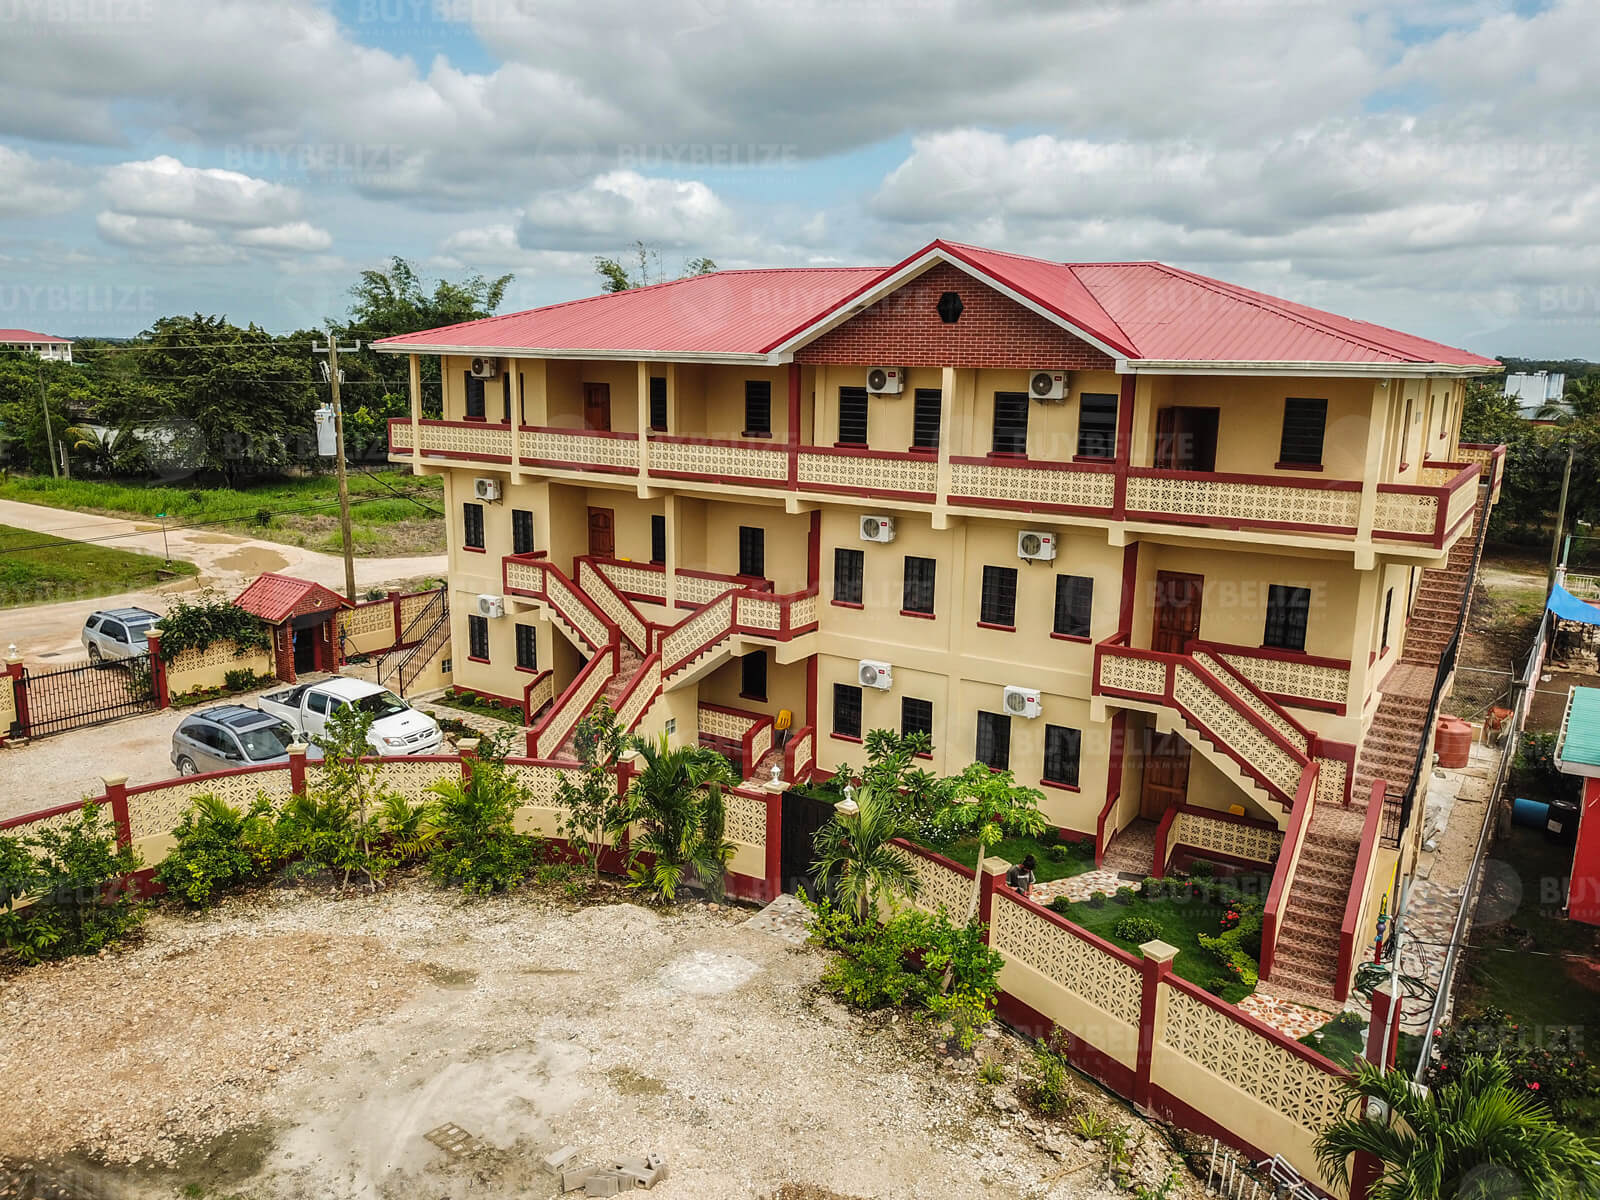 Fully Furnished 2 Bed 2 Bath Apartment for Rent in Belmopan City, Belize